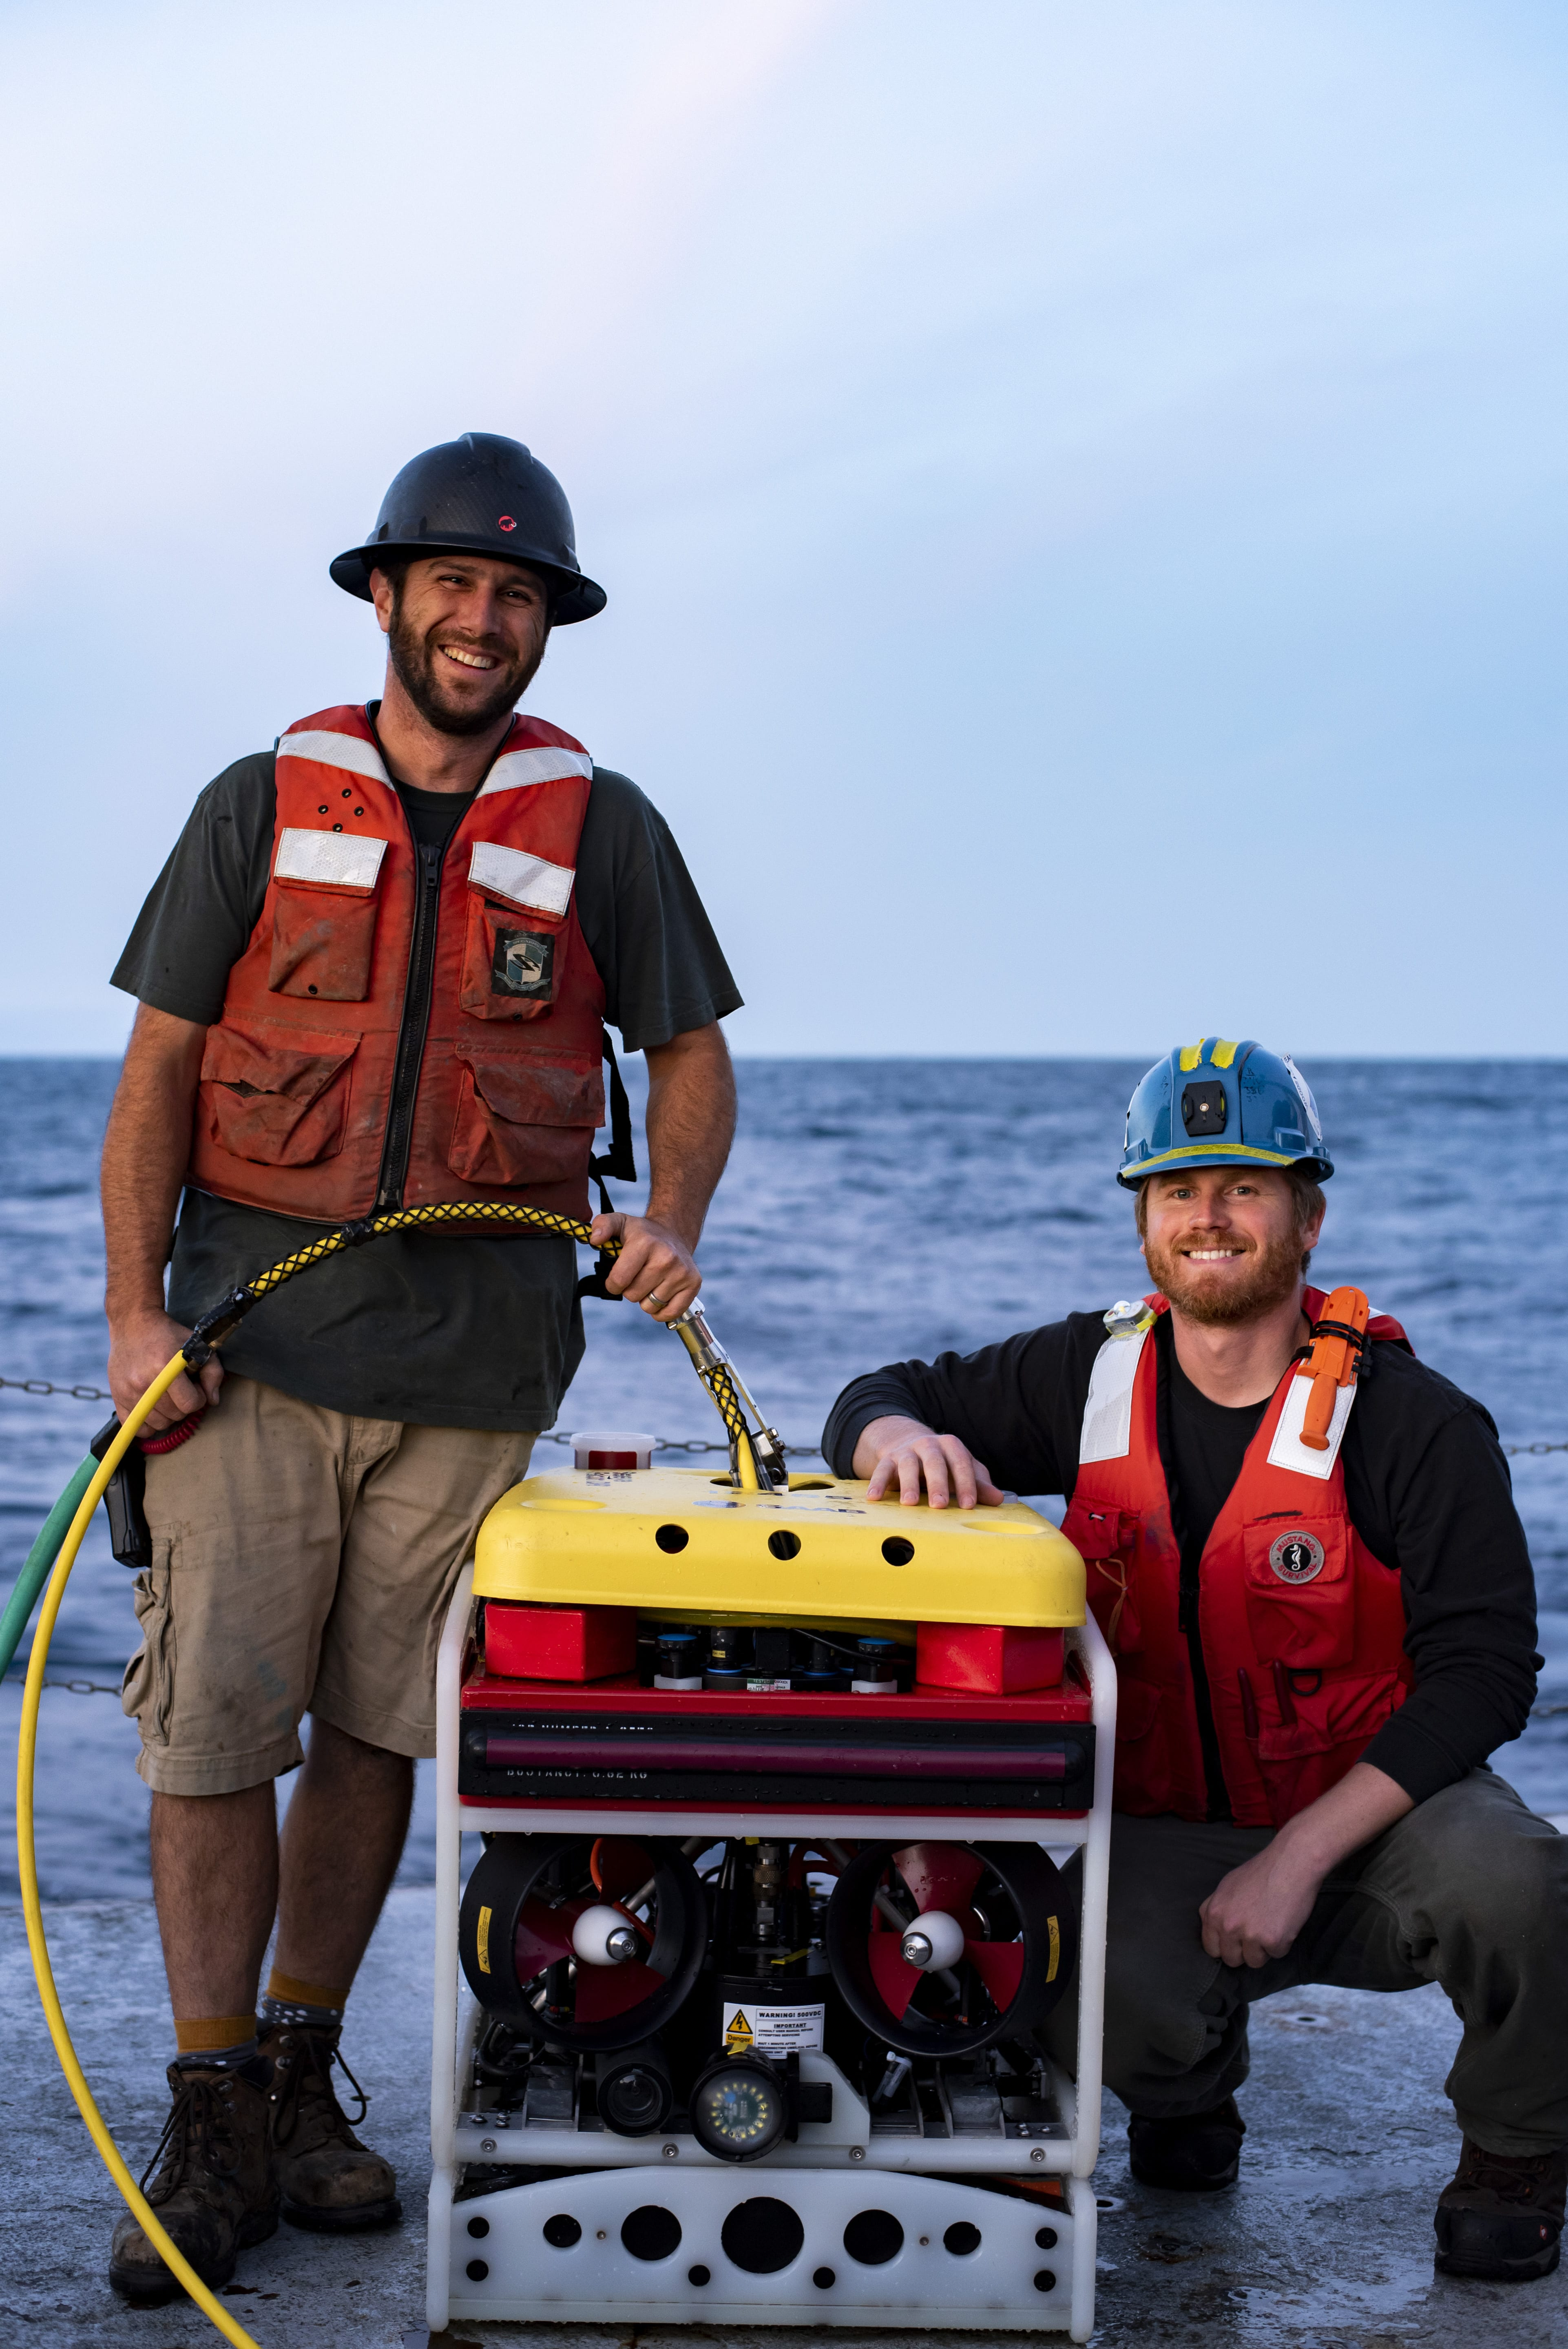 Senior Engineer Jeffrey Pietro (left) and Second Engineer Jared Schwartz (right) pose with the Saab <em>Seaeye Falcon</em> after it successfully located an unrecovered mooring anchor (Photo by Daniel Hentz | Woods Hole Oceanographic Institution)